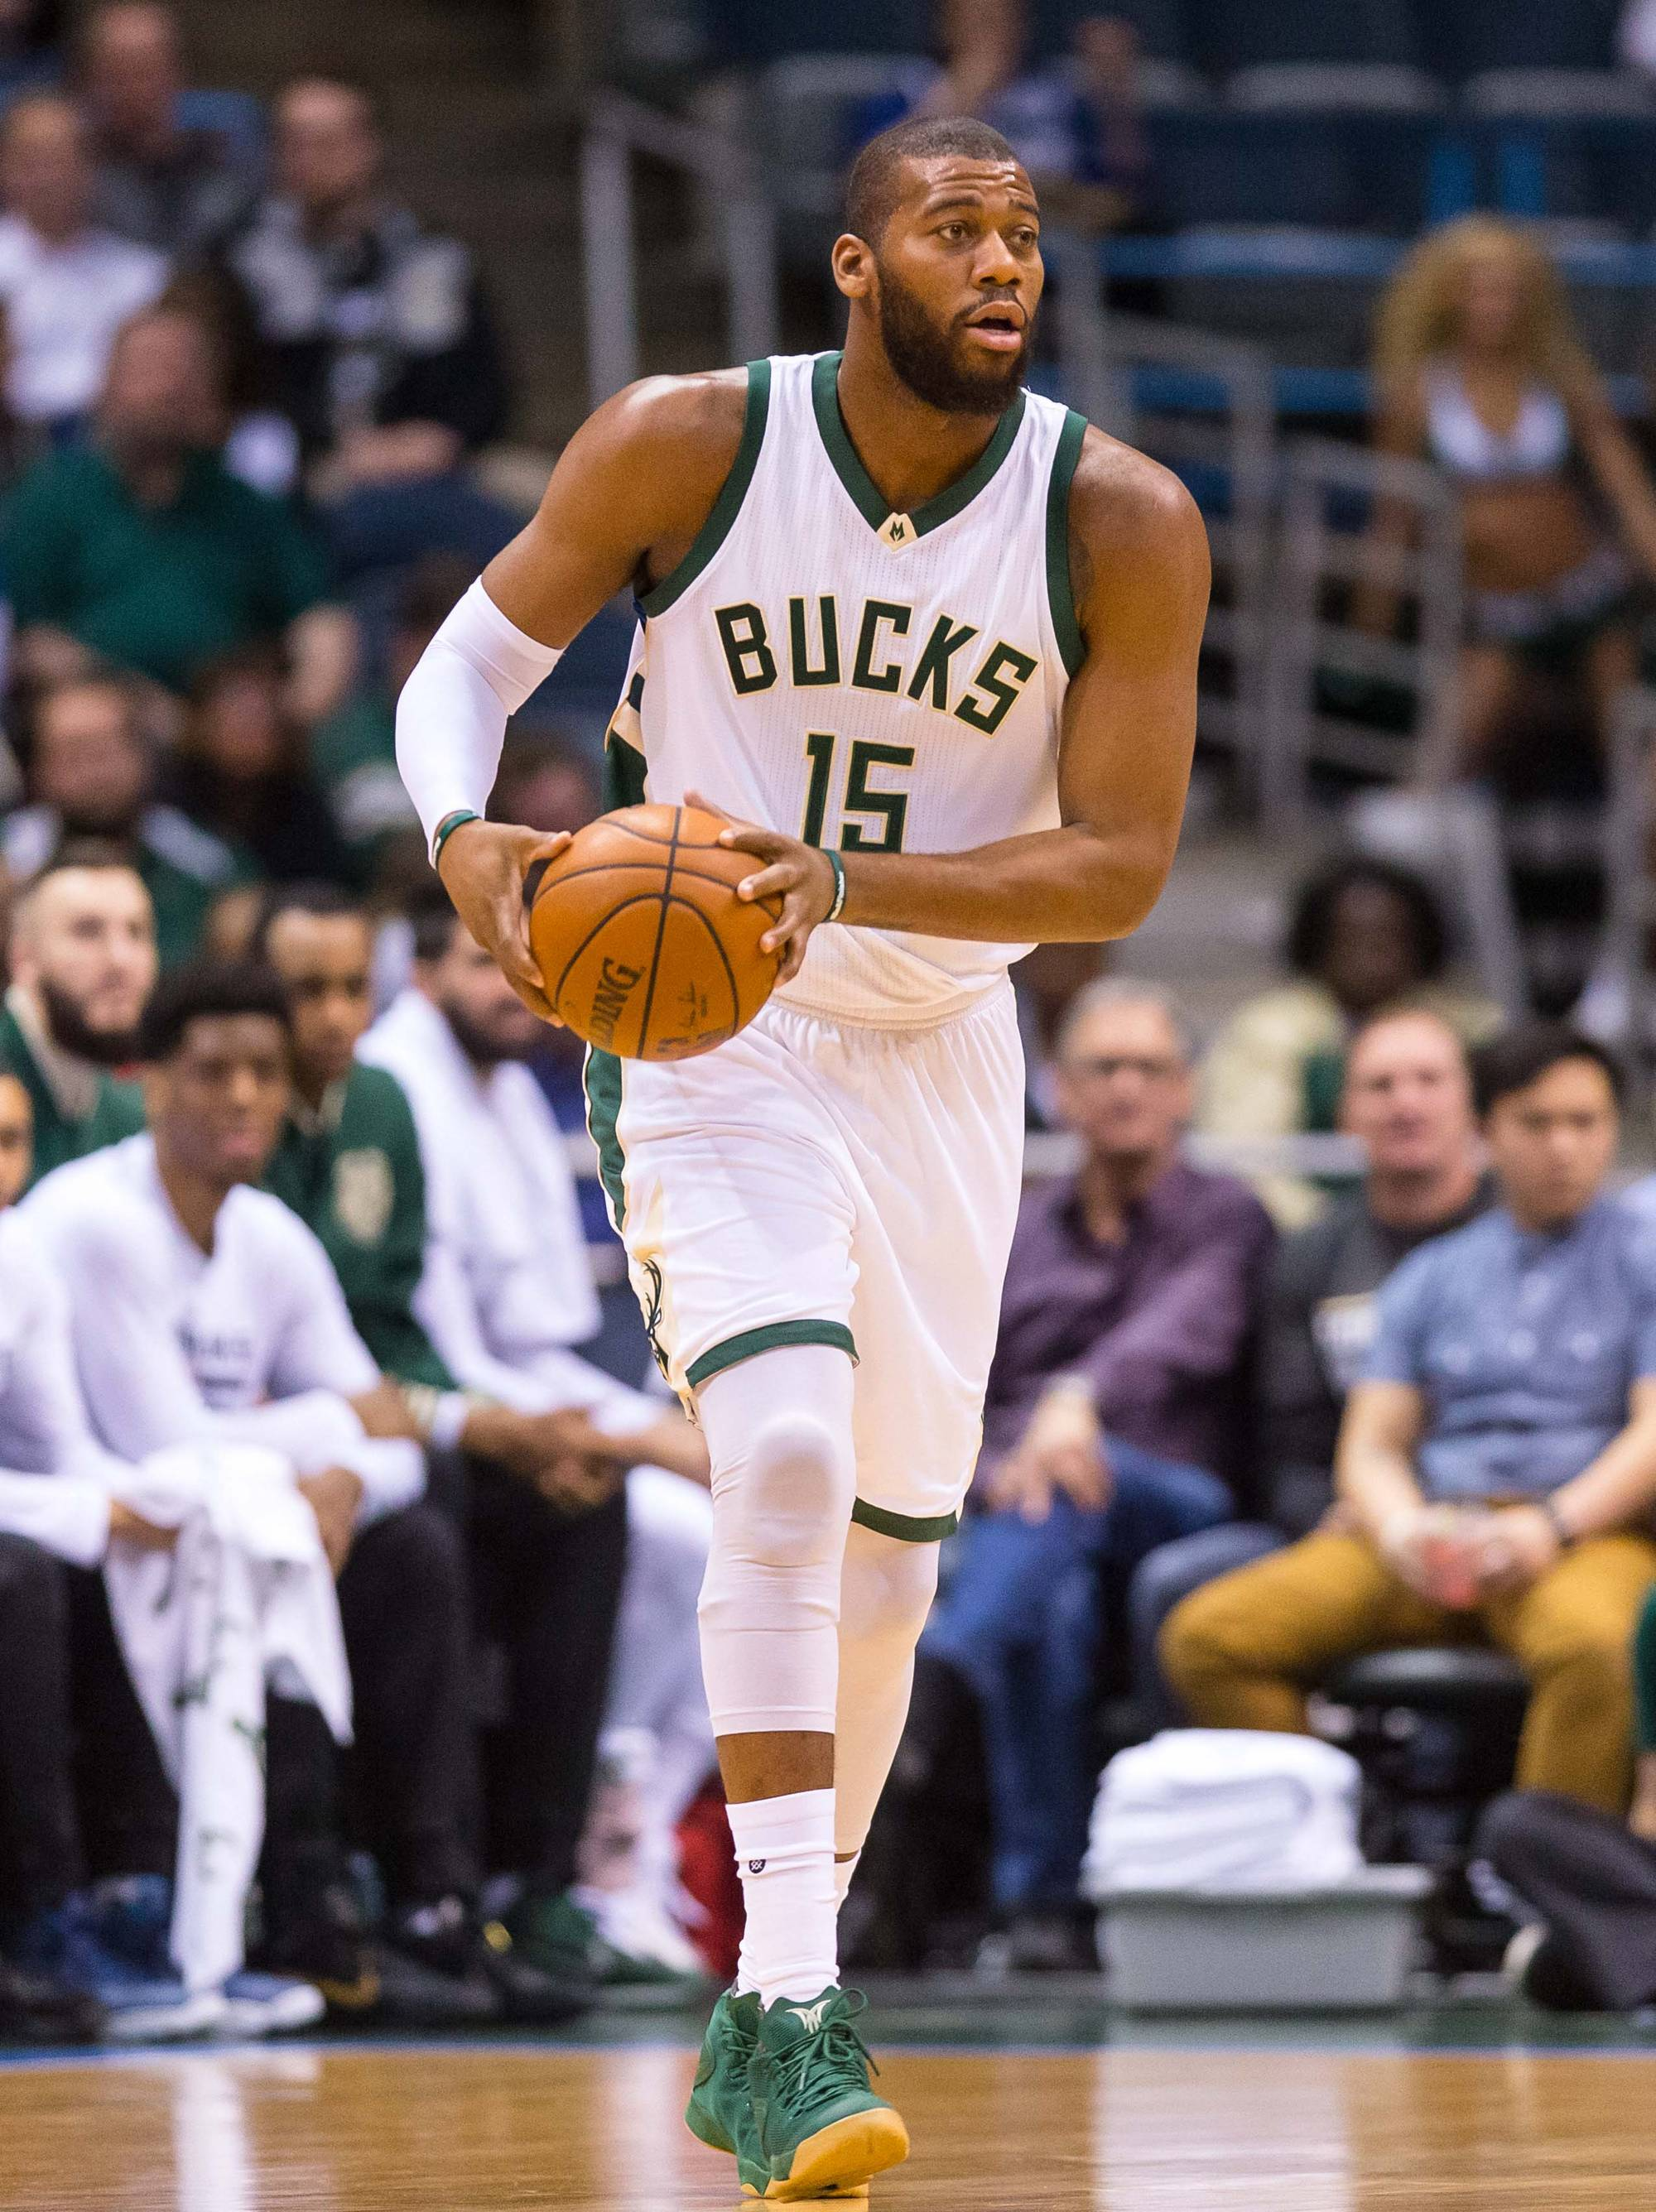 5 Things the Bucks Need To Do This Offseason